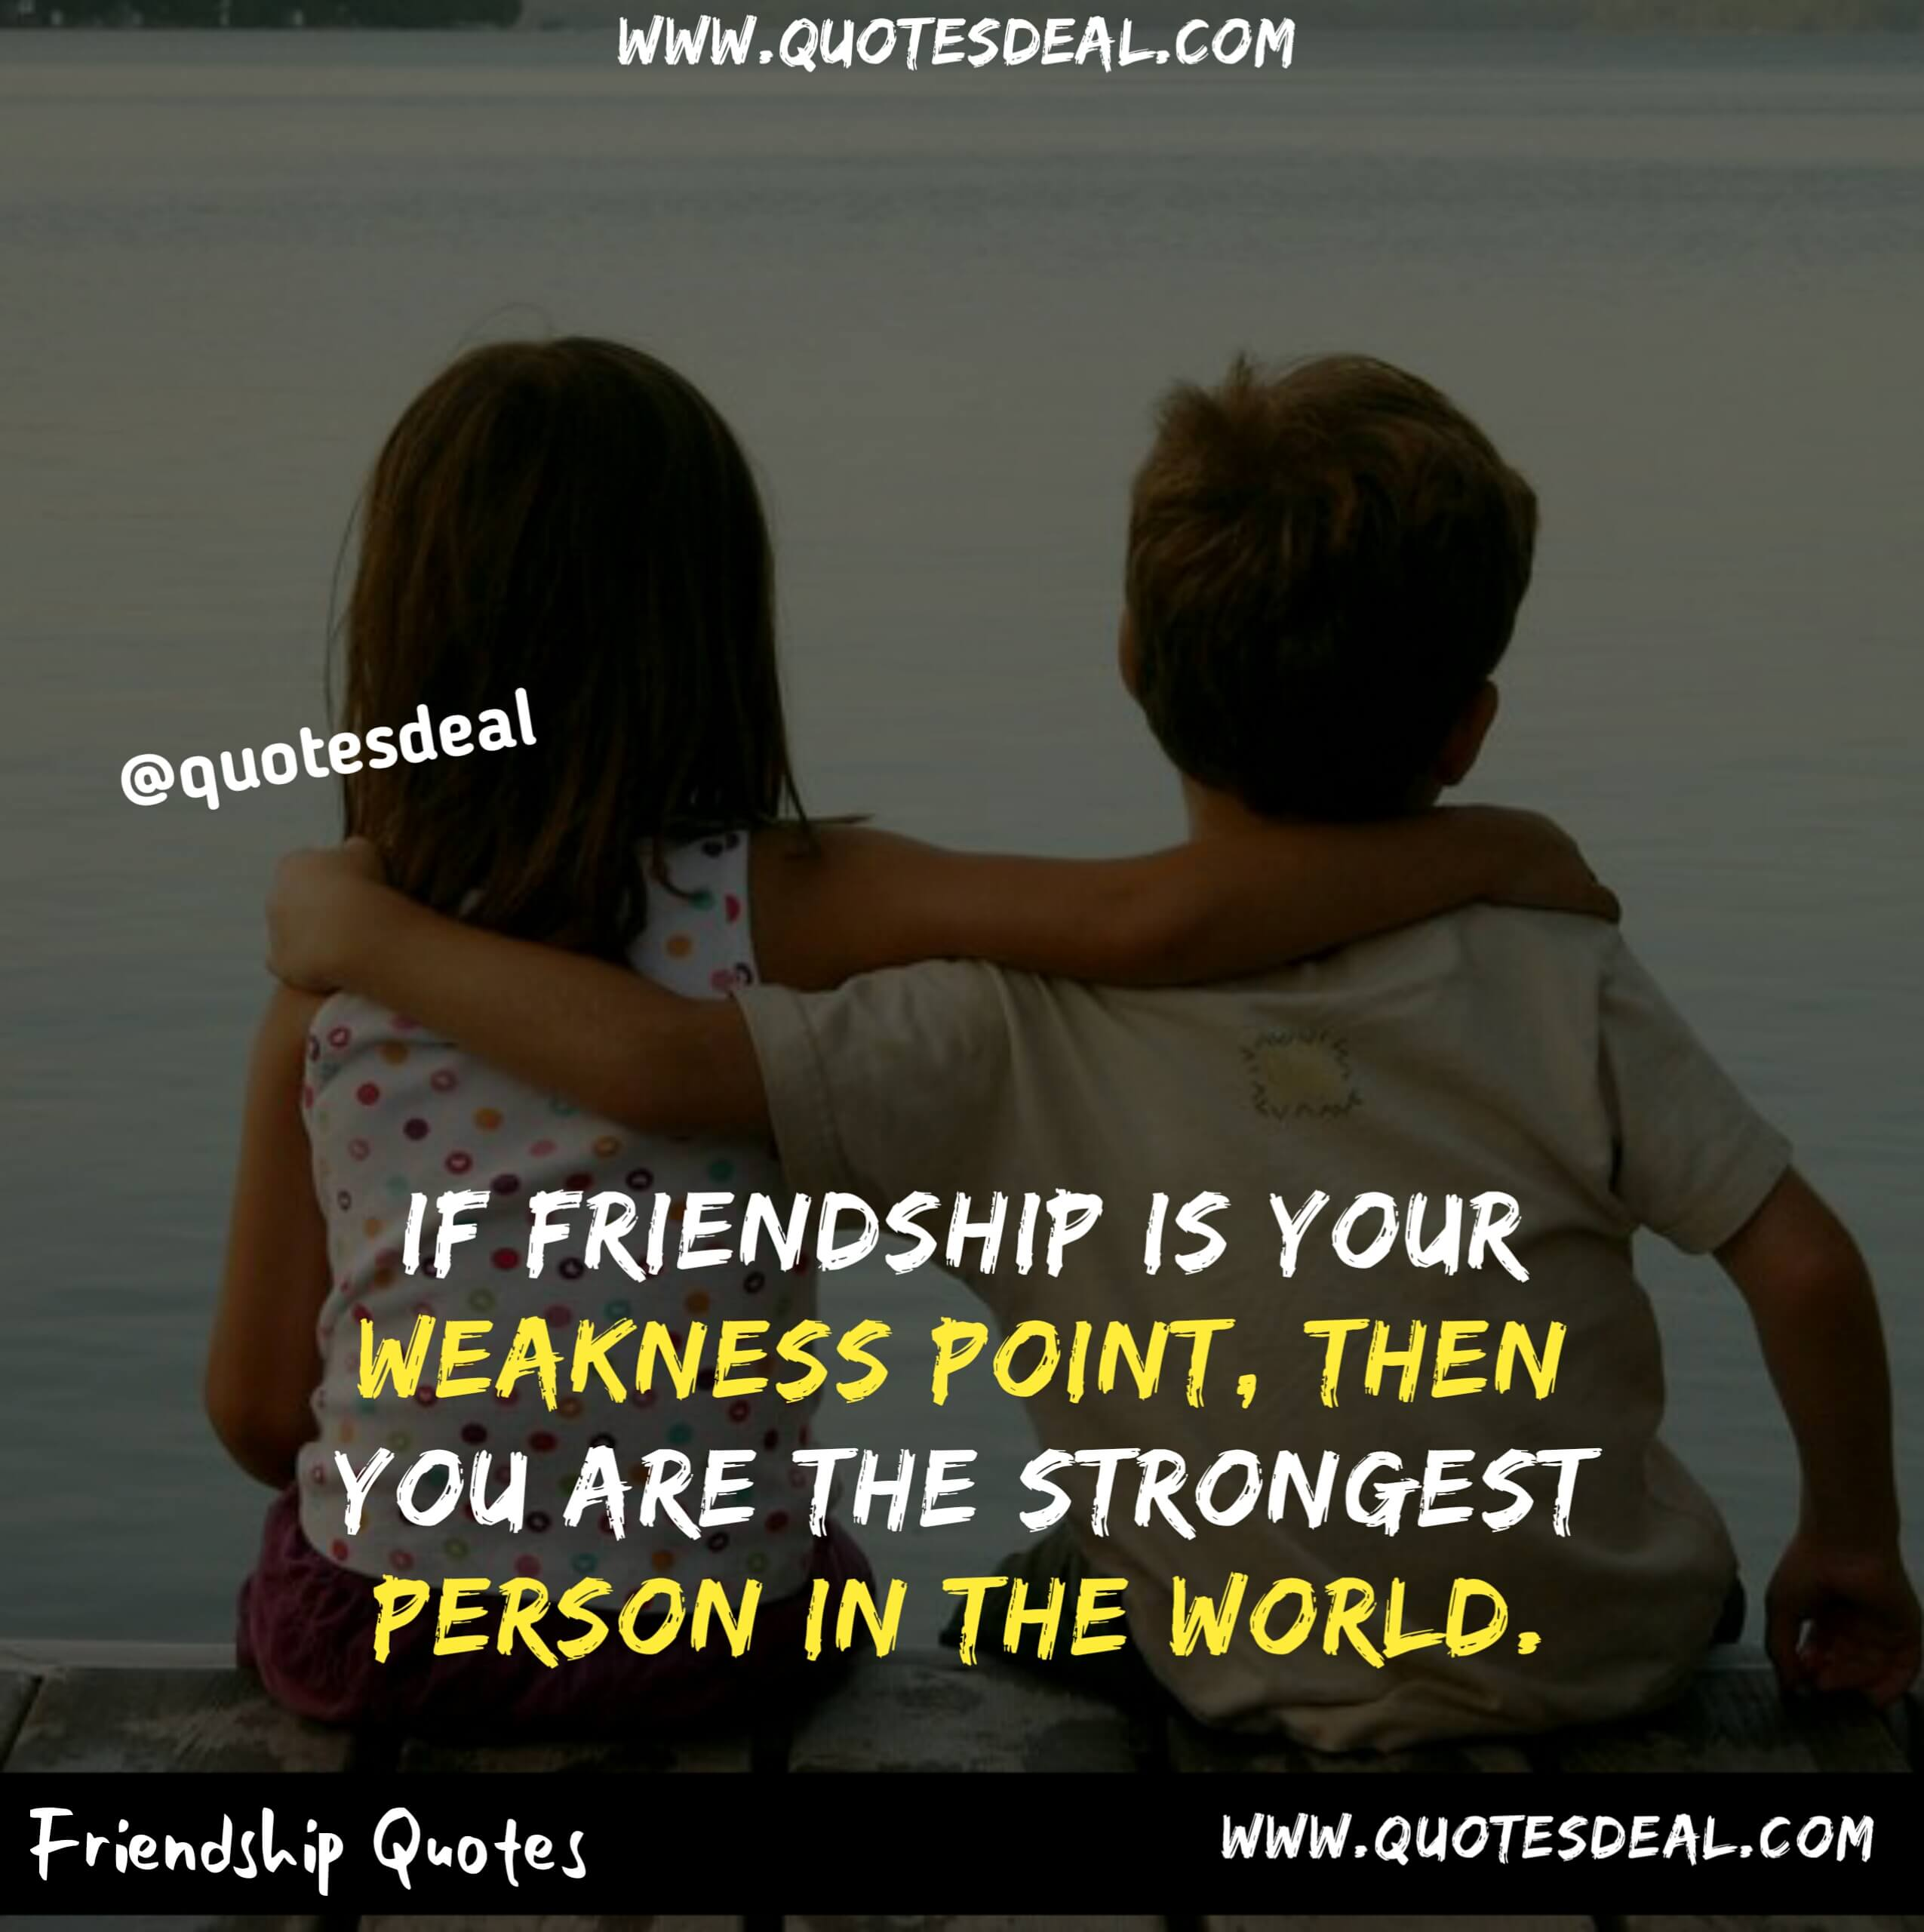 friendship is your weakness point